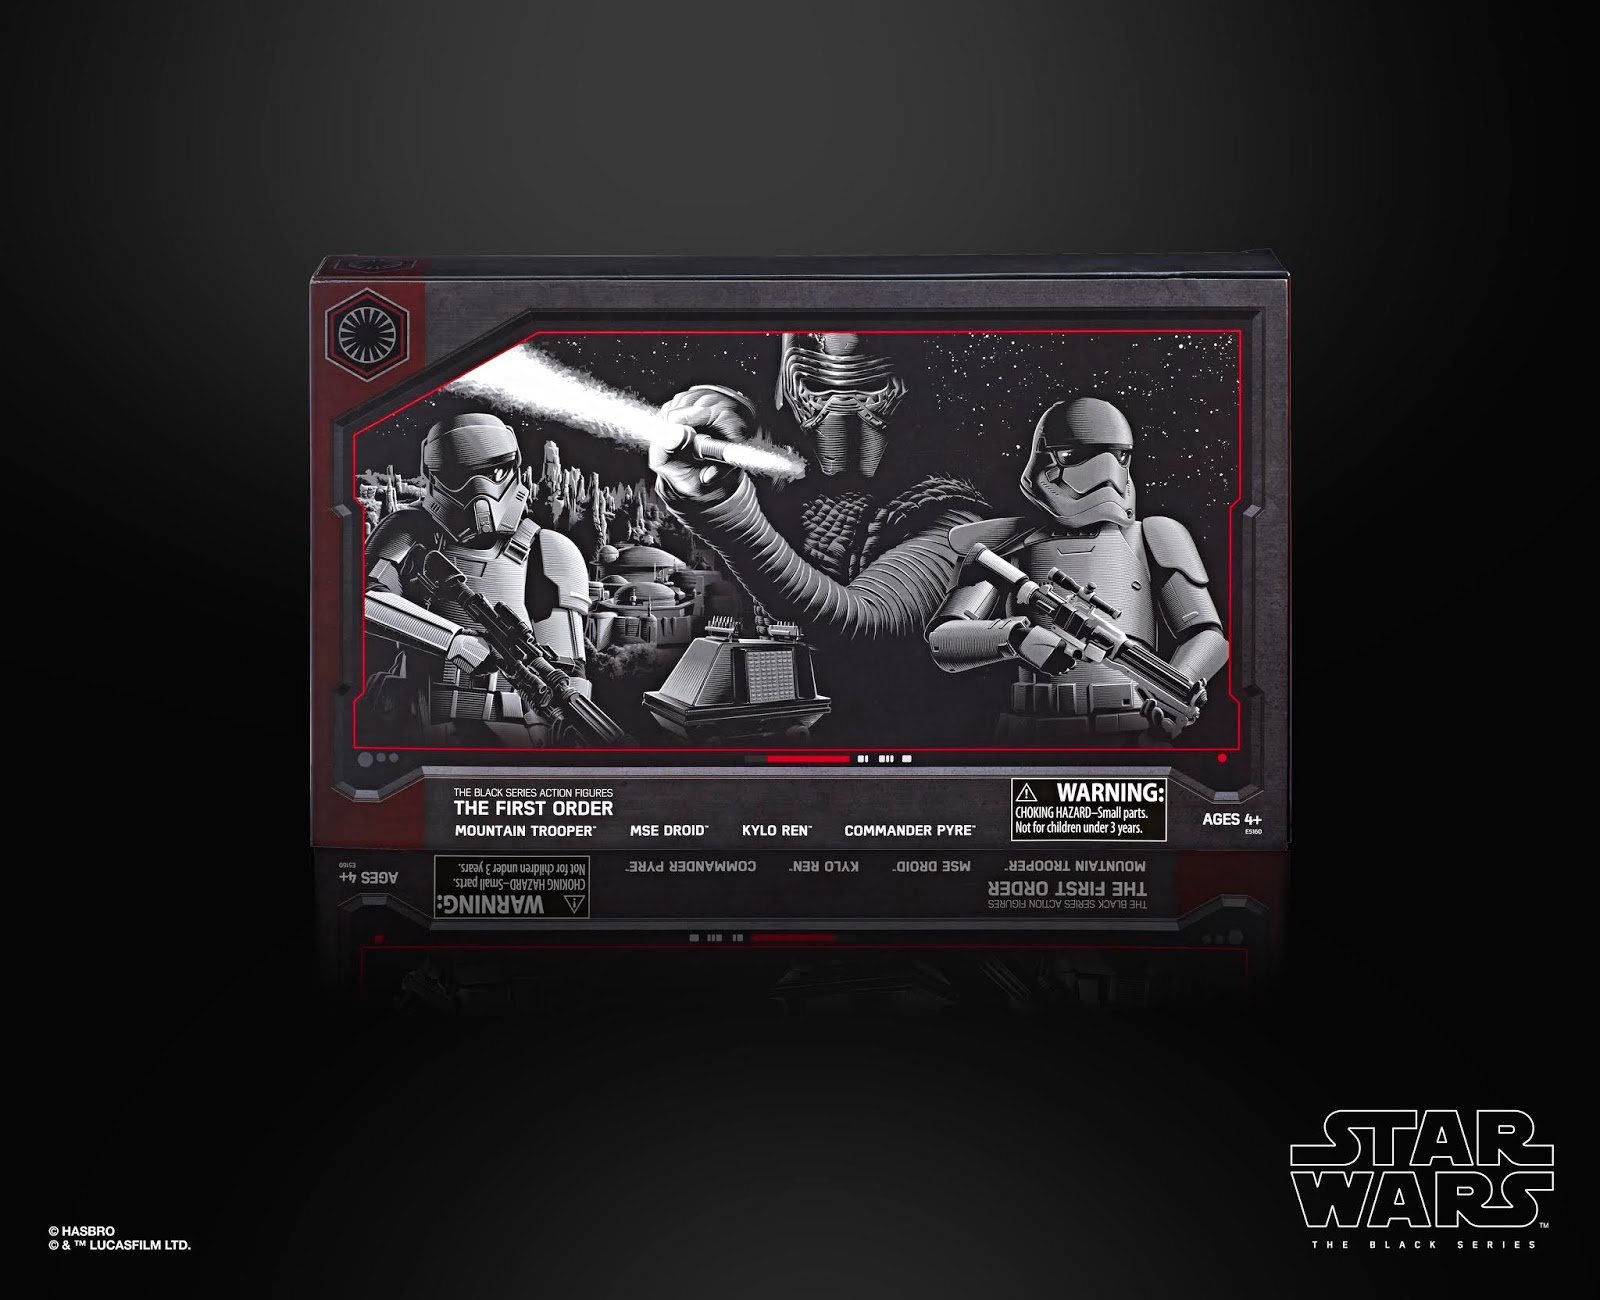 STAR WARS THE BLACK SERIES 6-INCH THE FIRST ORDER 4-PACK